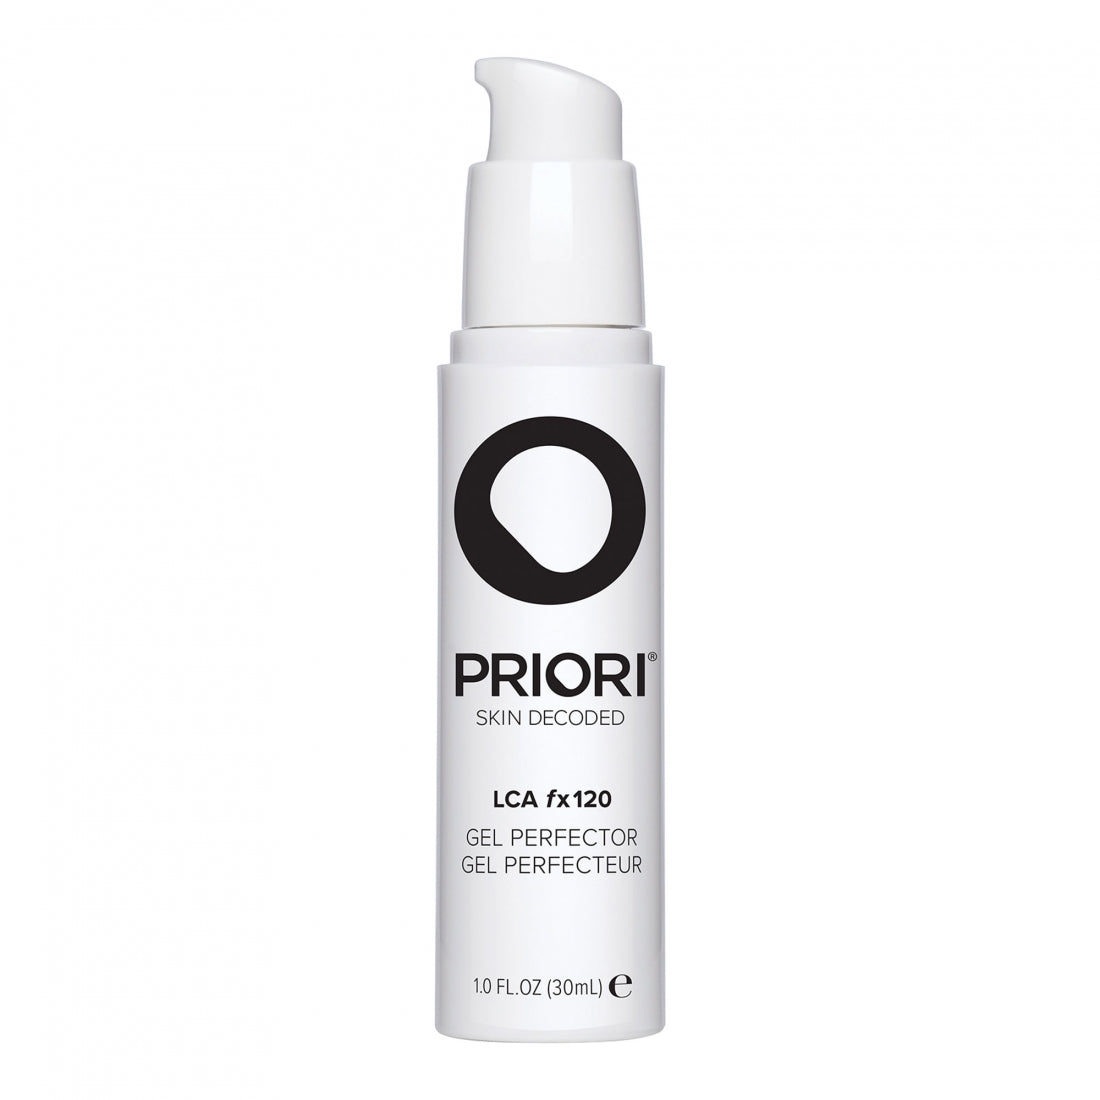 Priori LCA fx120 Gel Perfector 20ml